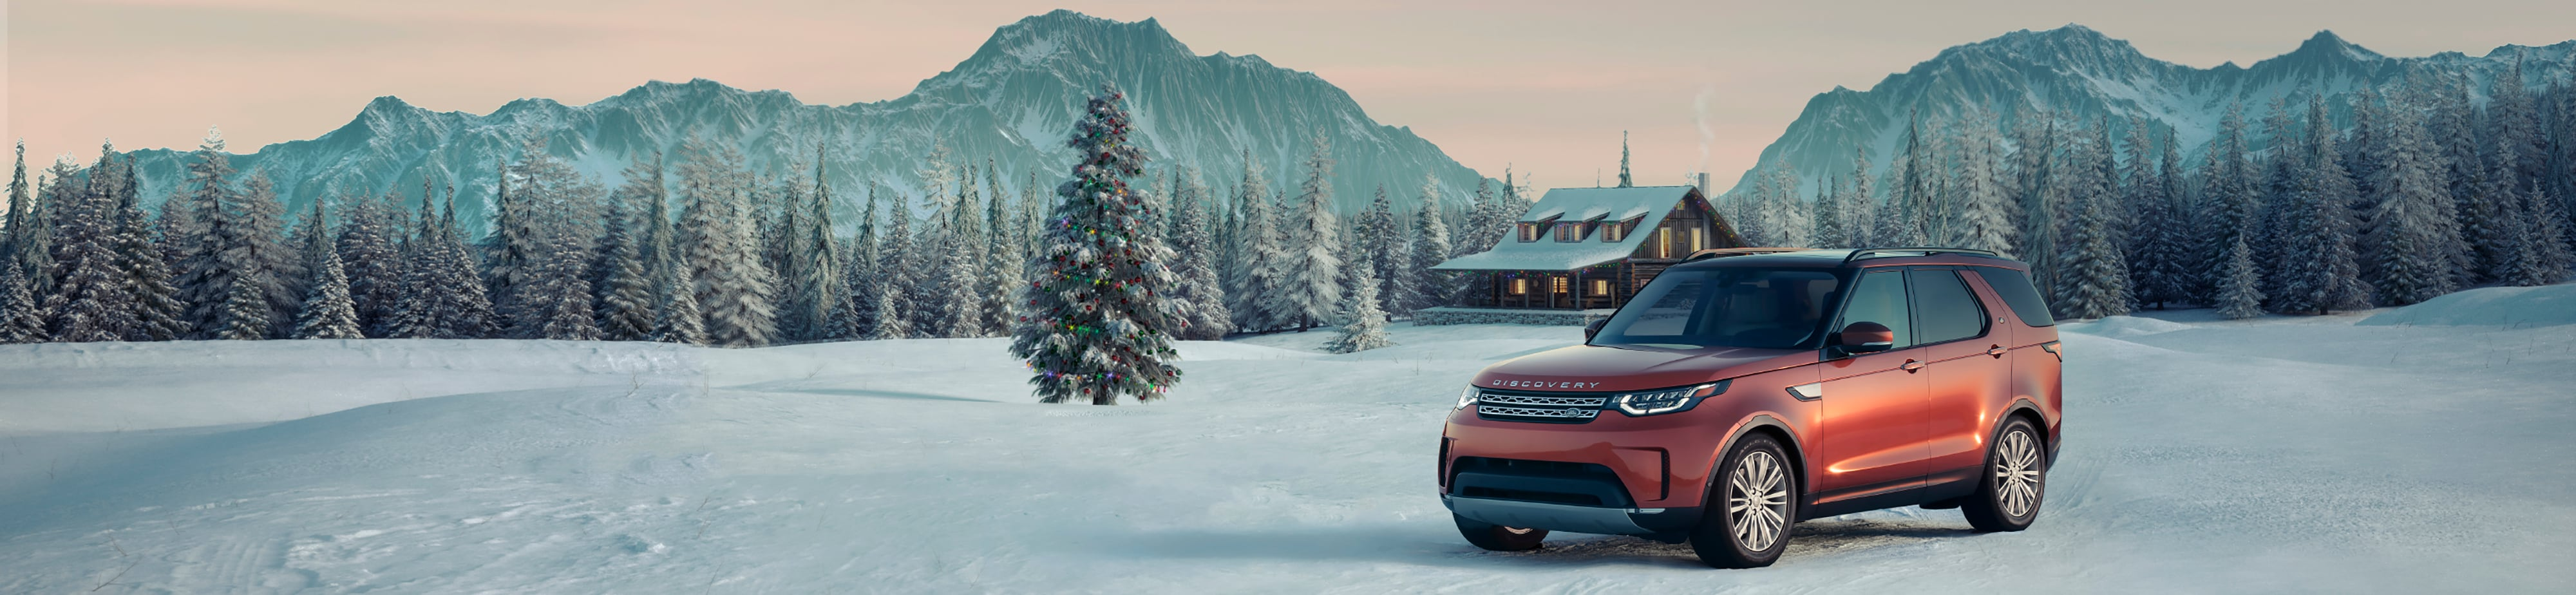 Buy or Lease Land Rover Discovery SUV Norwood Boston Norwood Quincy